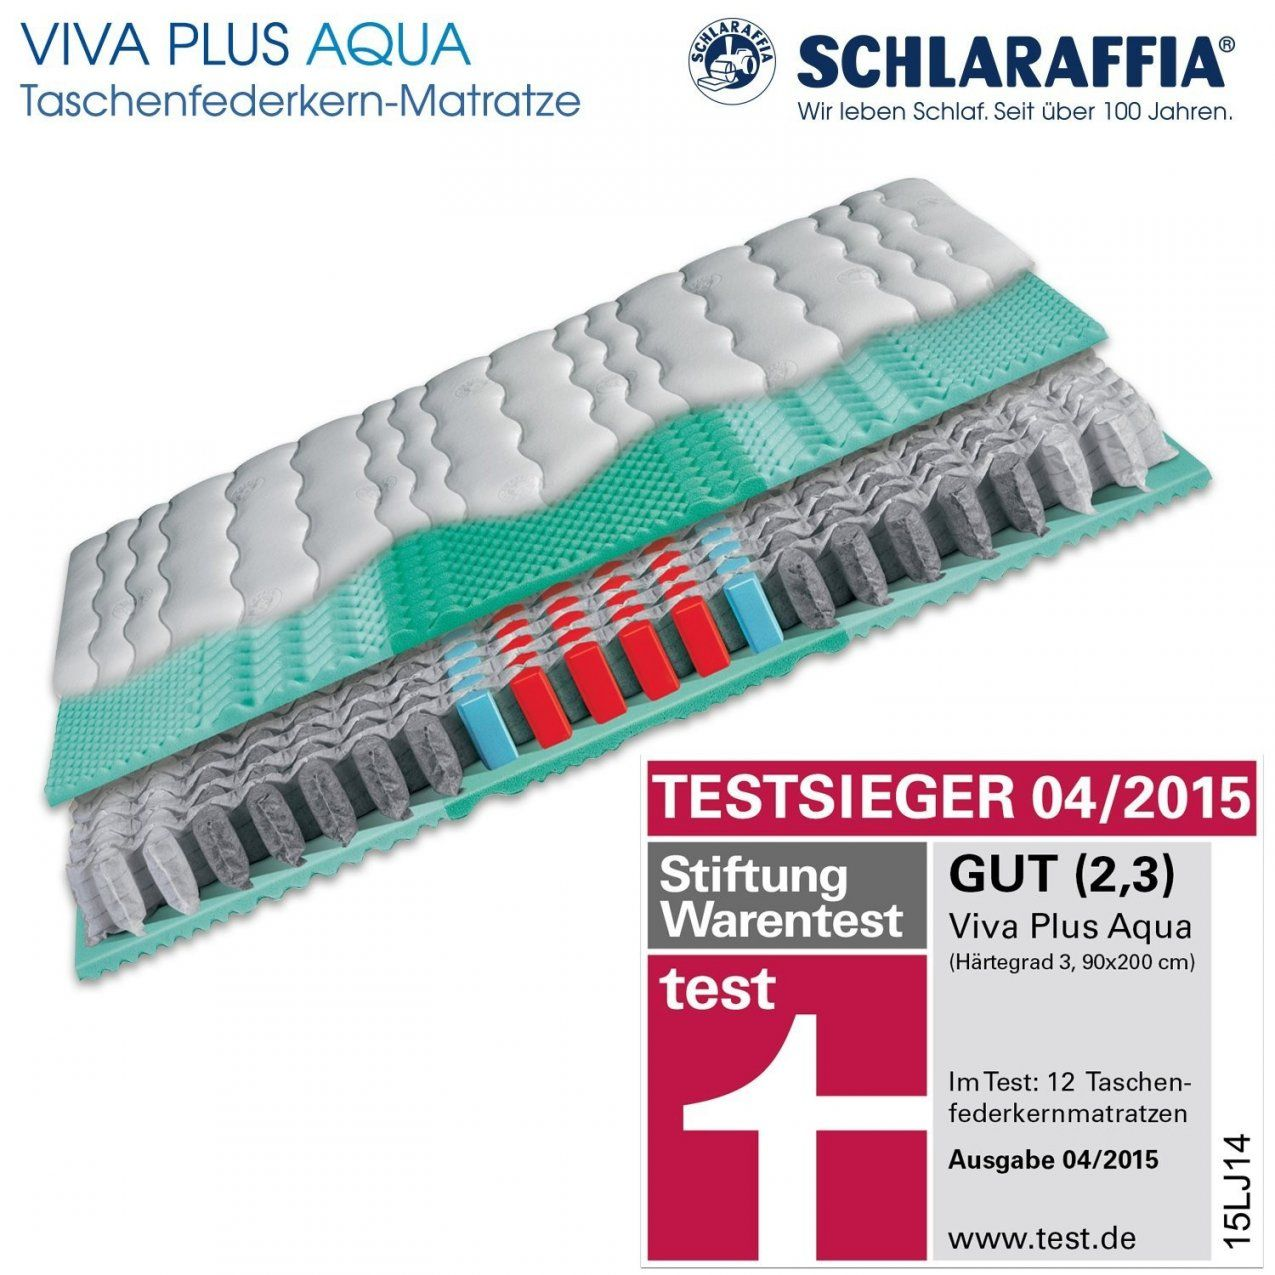 Unique Schlaraffia Viva Plus Aqua Taschenfederkern Plus Matratze 80 von Schlaraffia Matratze Viva Plus Aqua Photo